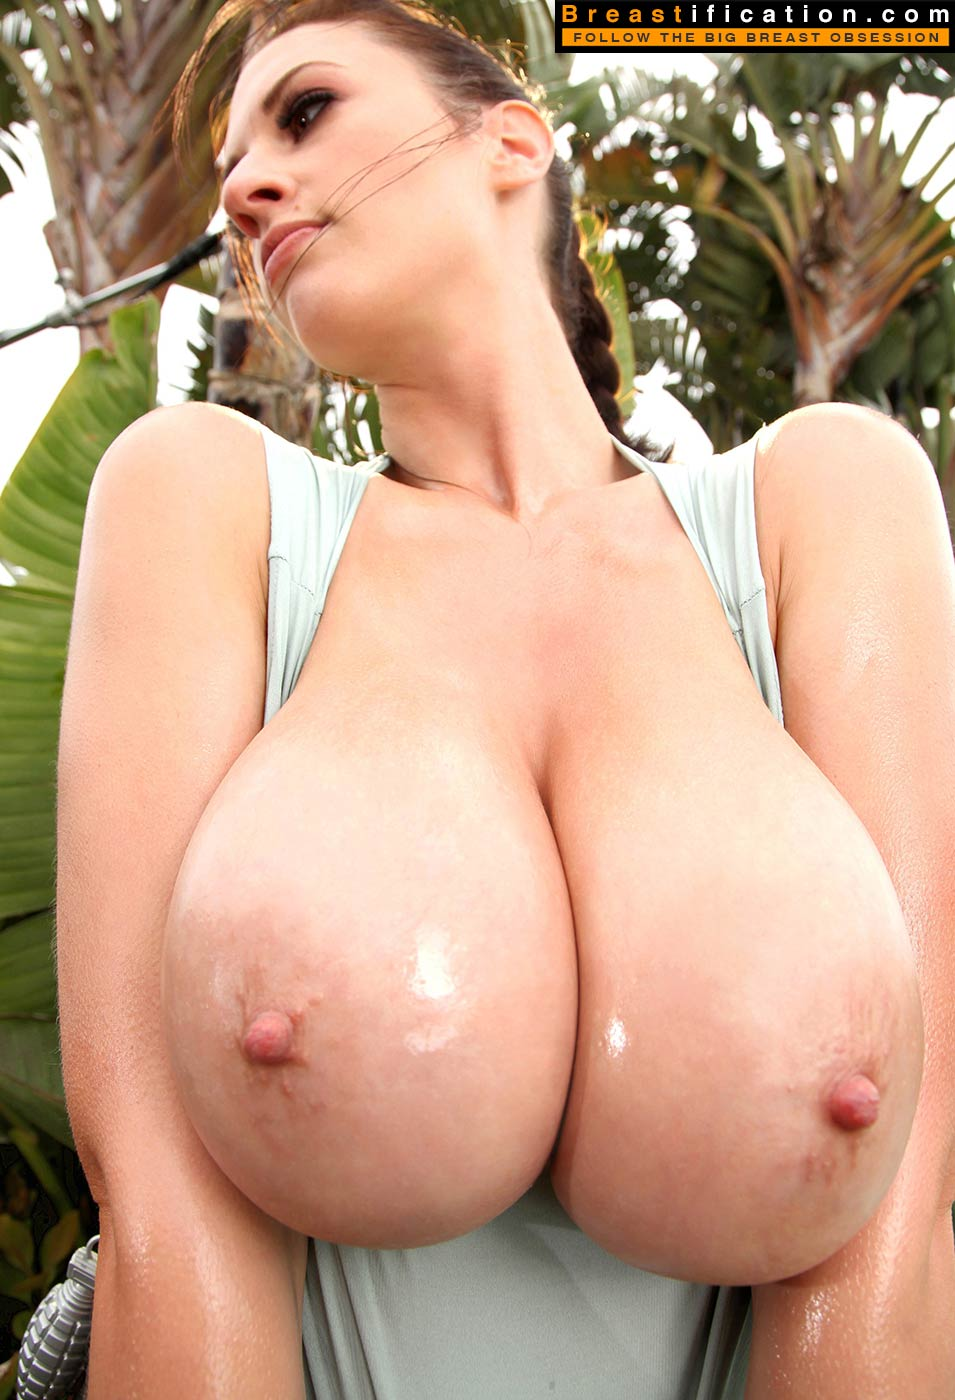 Long big nipple breast